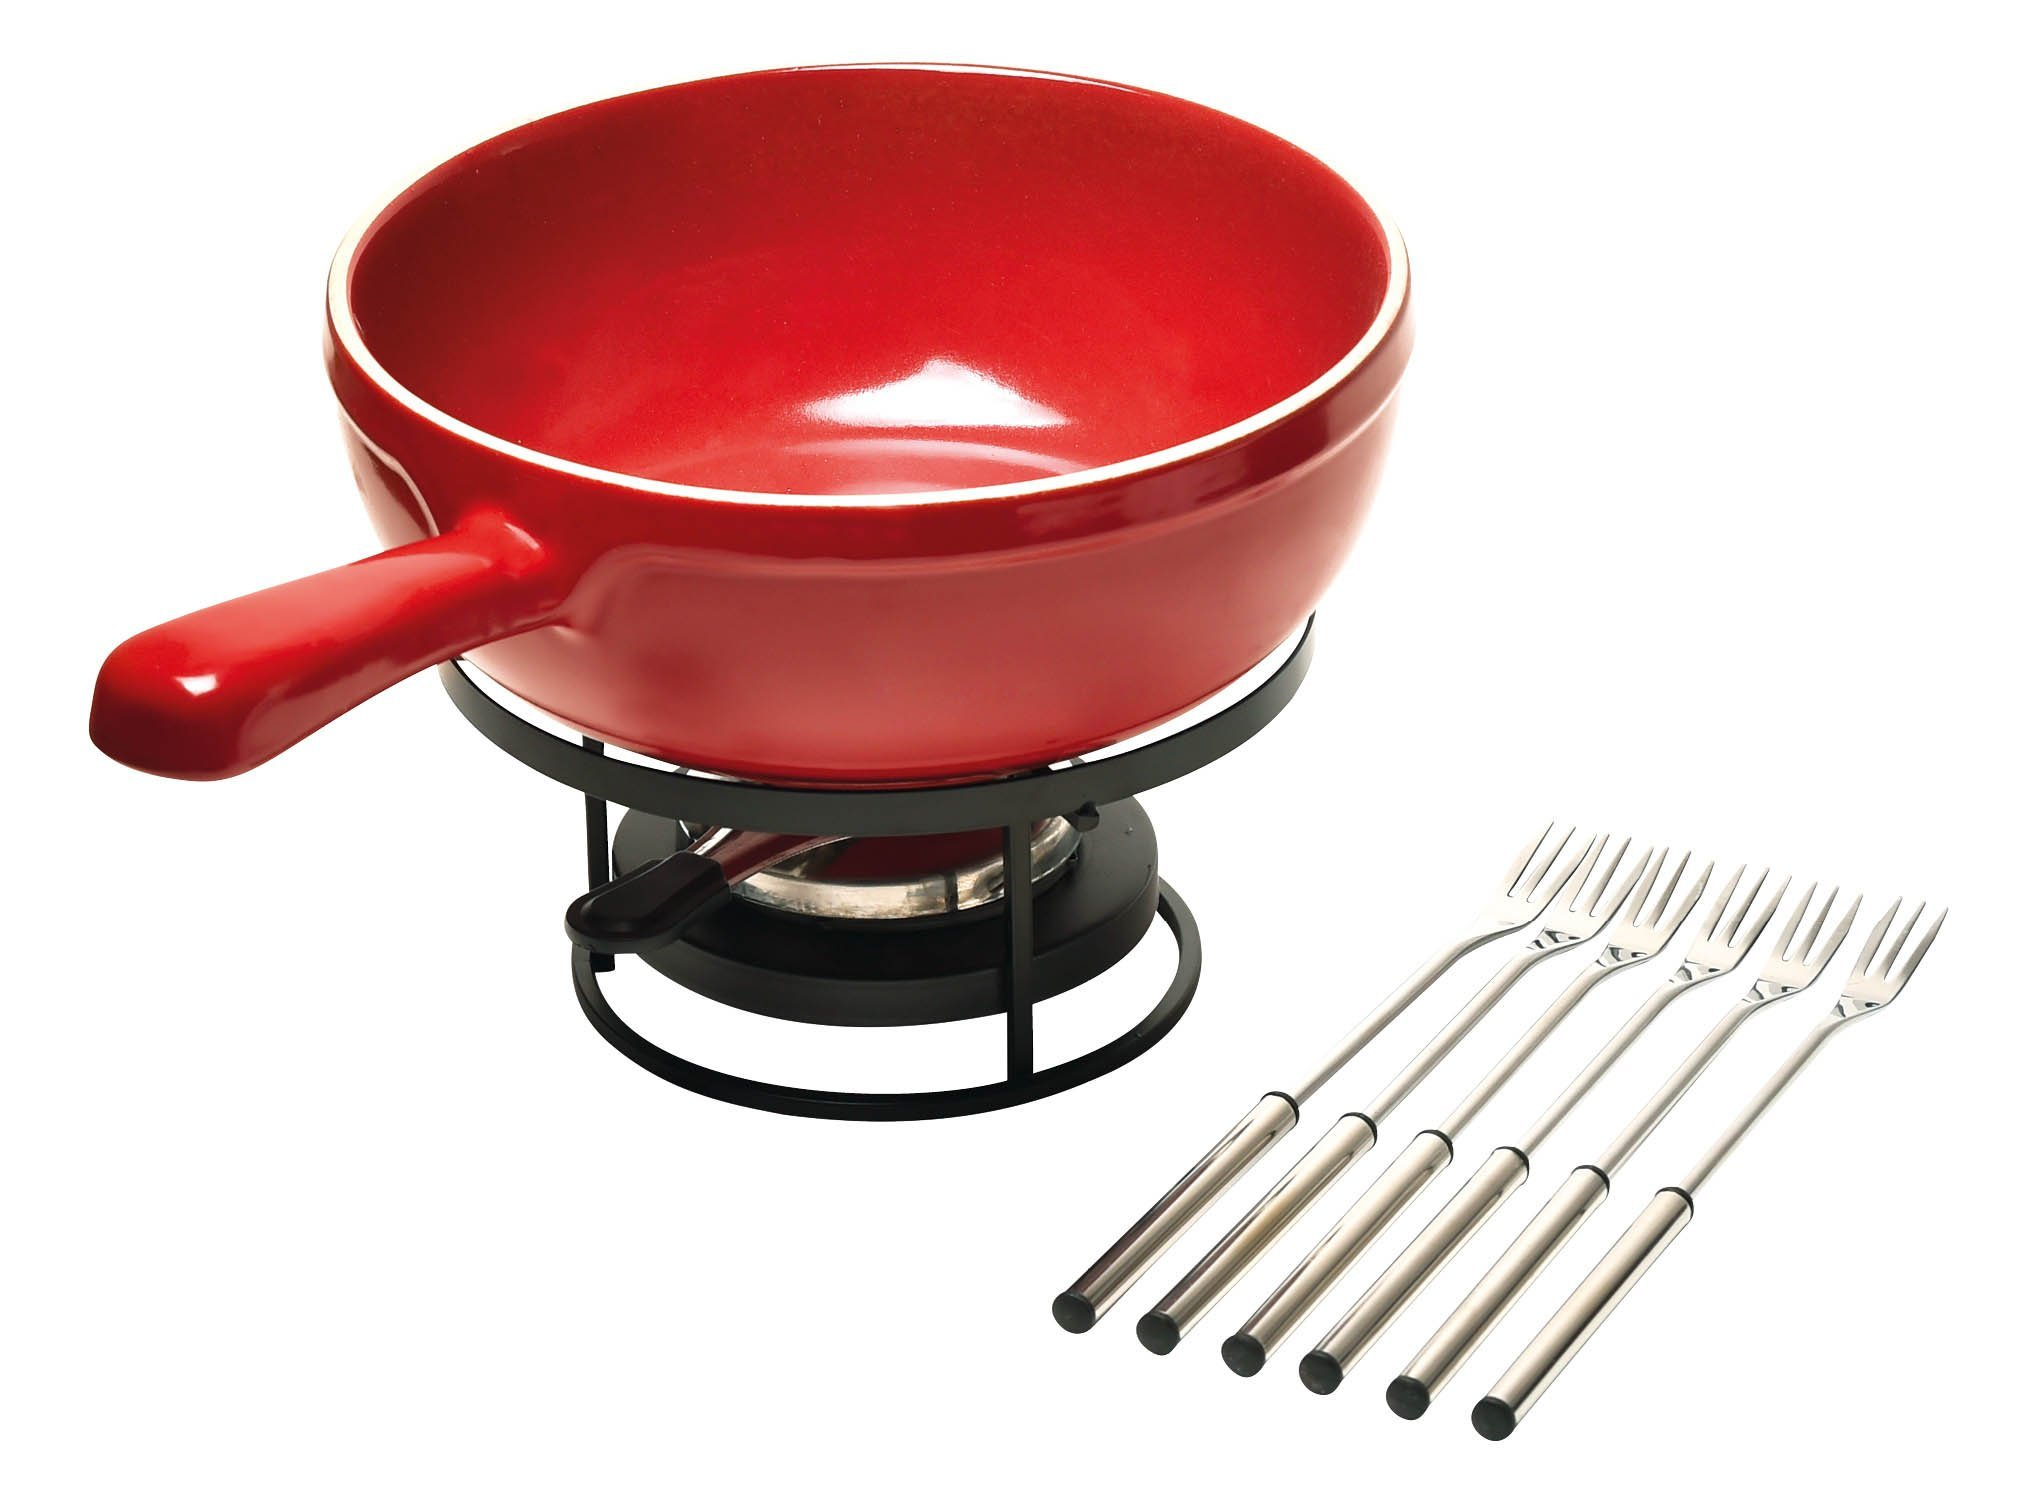 Emile Henry Made In France Flame Cheese Fondue Set, 2.6 quart, Burgundy by Emile Henry